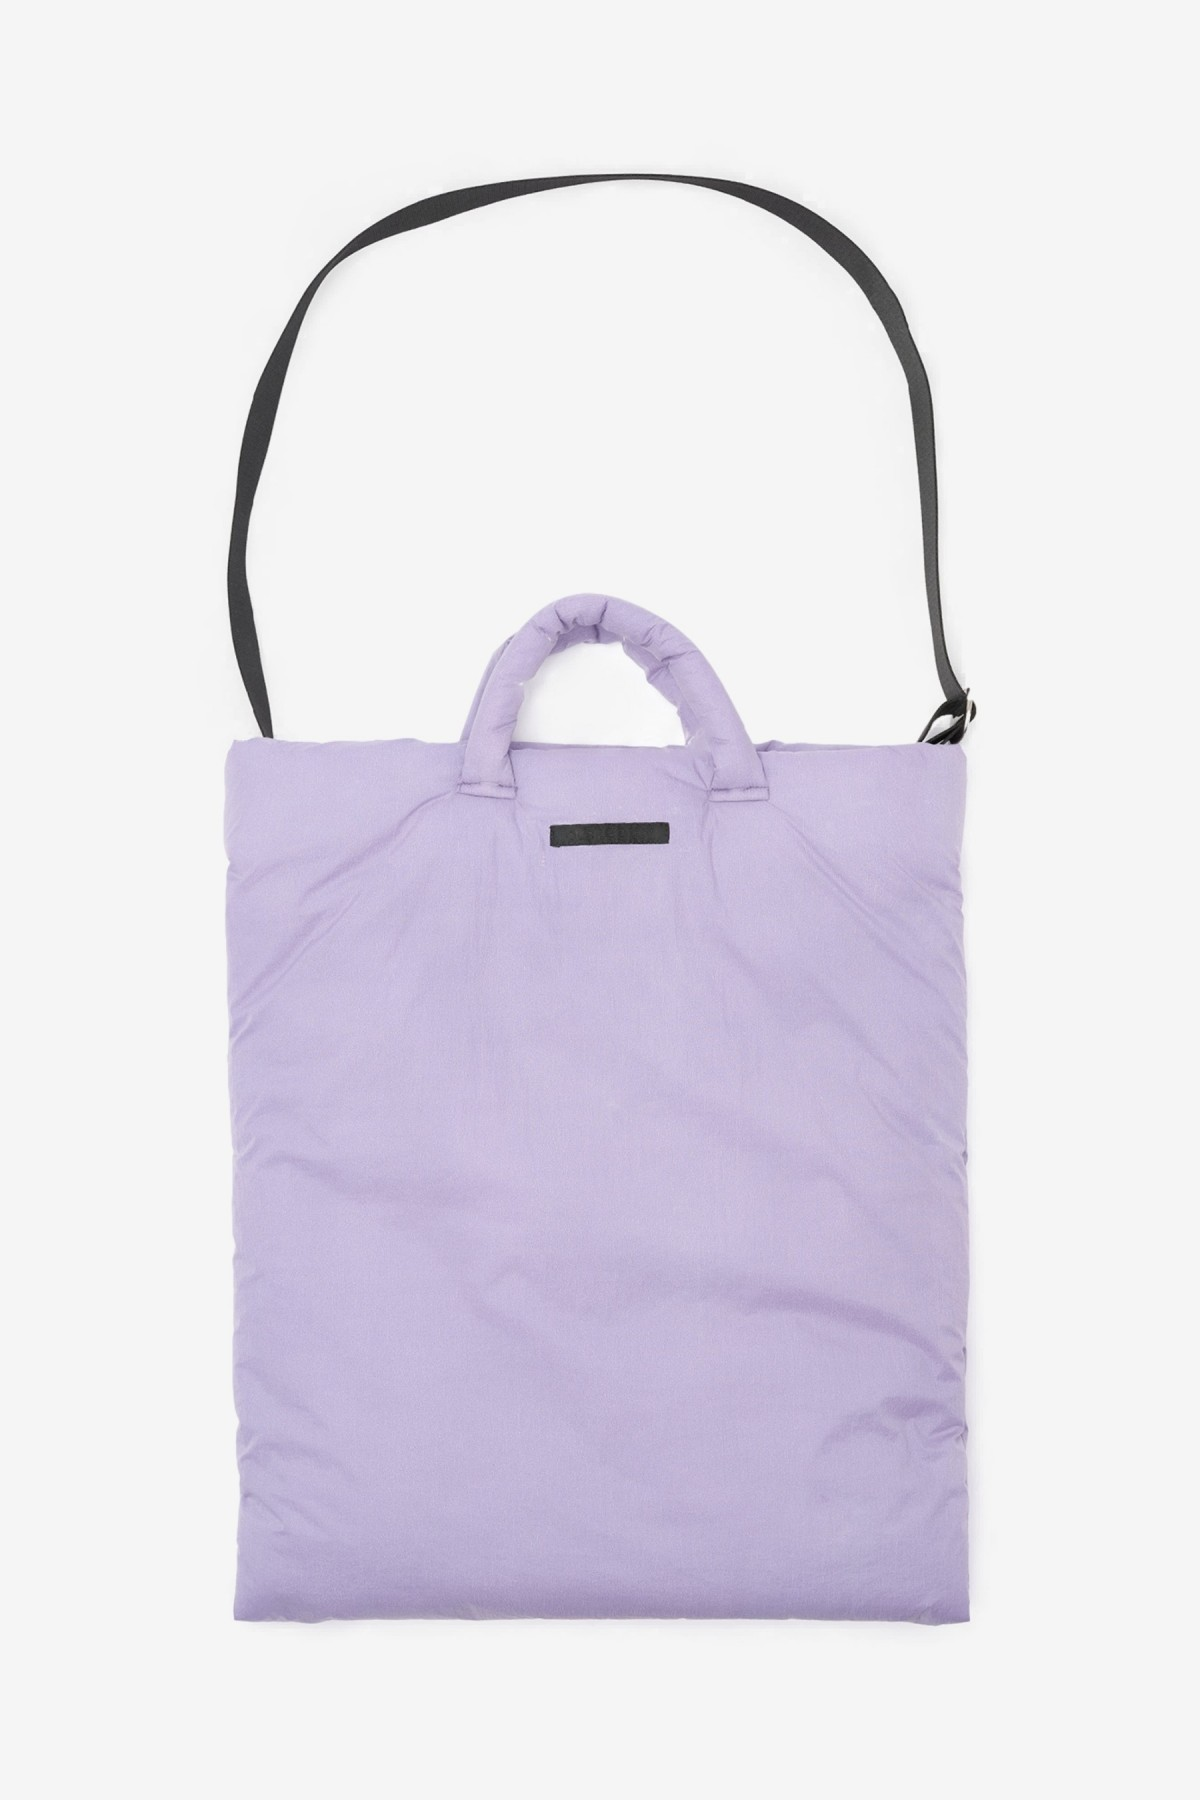 Our Legacy Pillow Tote in Thermochromic Purple